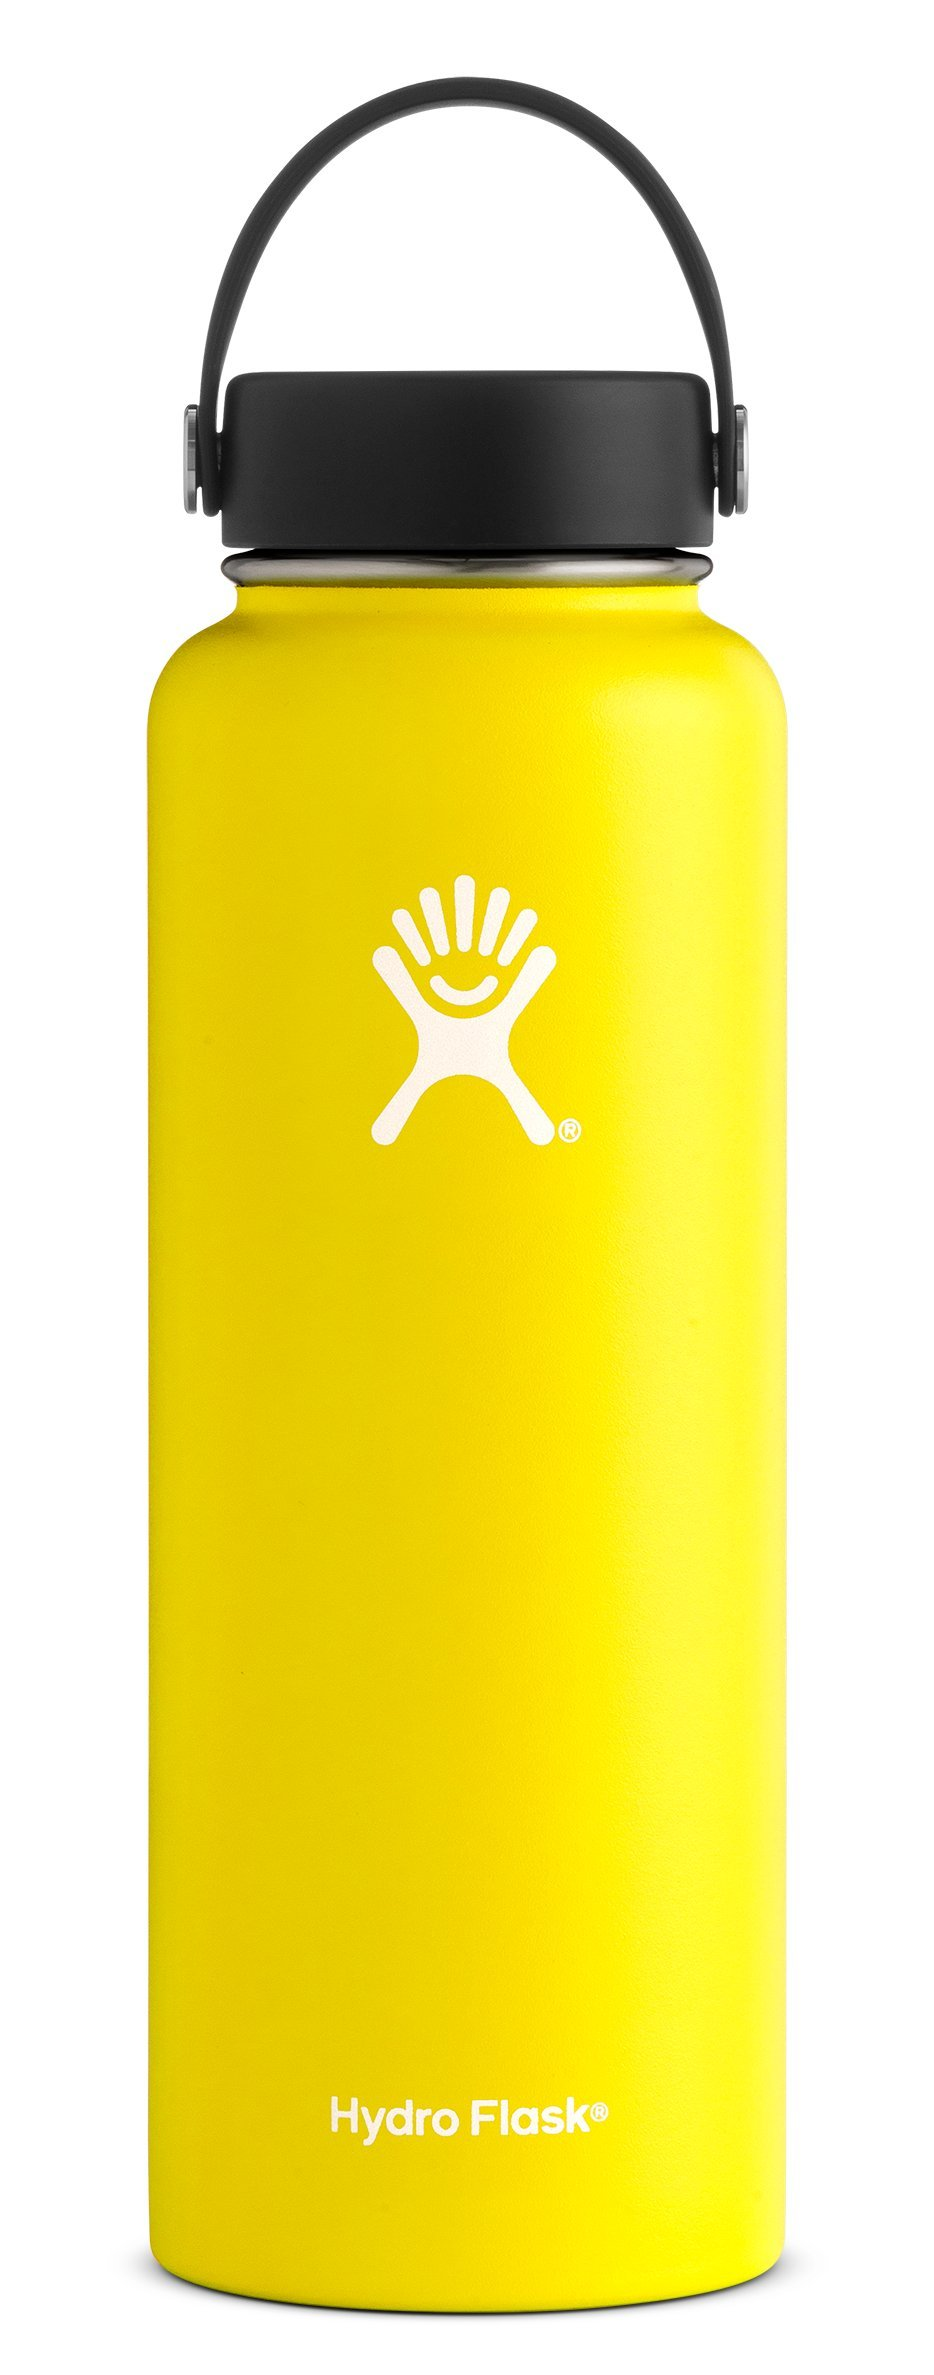 Hydro Flask 40 oz Double Wall Vacuum Insulated Stainless Steel Leak Proof Sports Water Bottle, Wide Mouth with BPA Free Flex Cap, Lemon by Hydro Flask